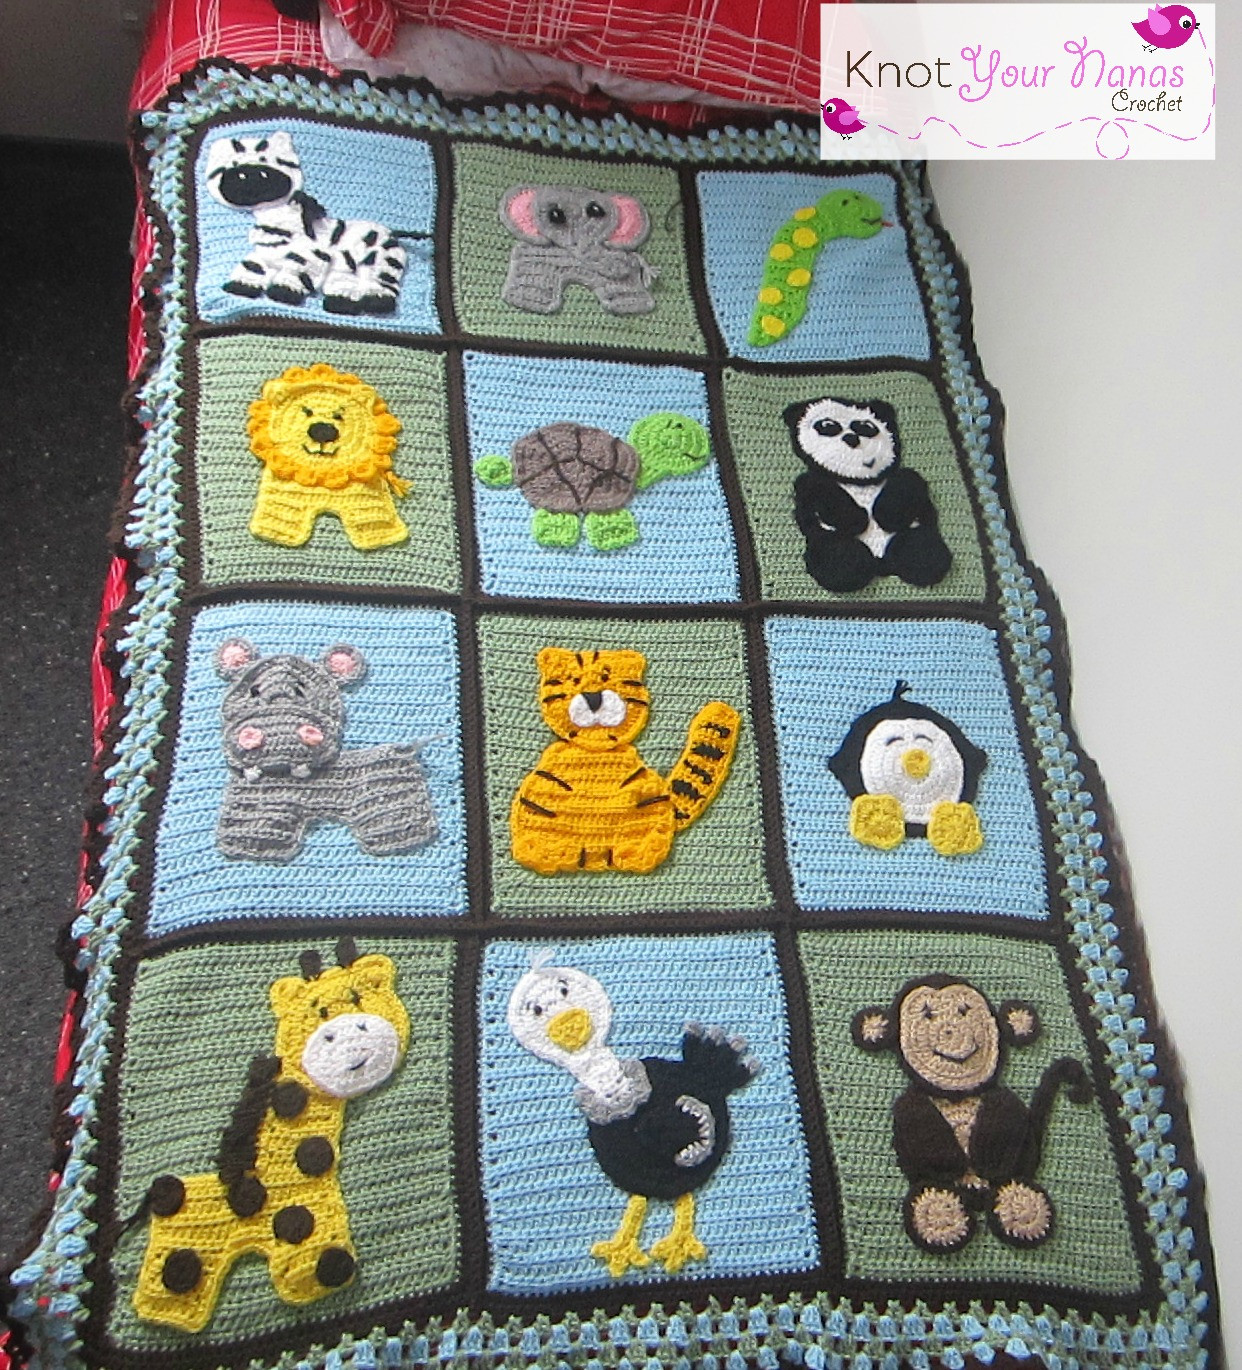 Crochet Quilts Inspirational Knot Your Nana S Crochet Zoo Blanket Of Unique 45 Pics Crochet Quilts